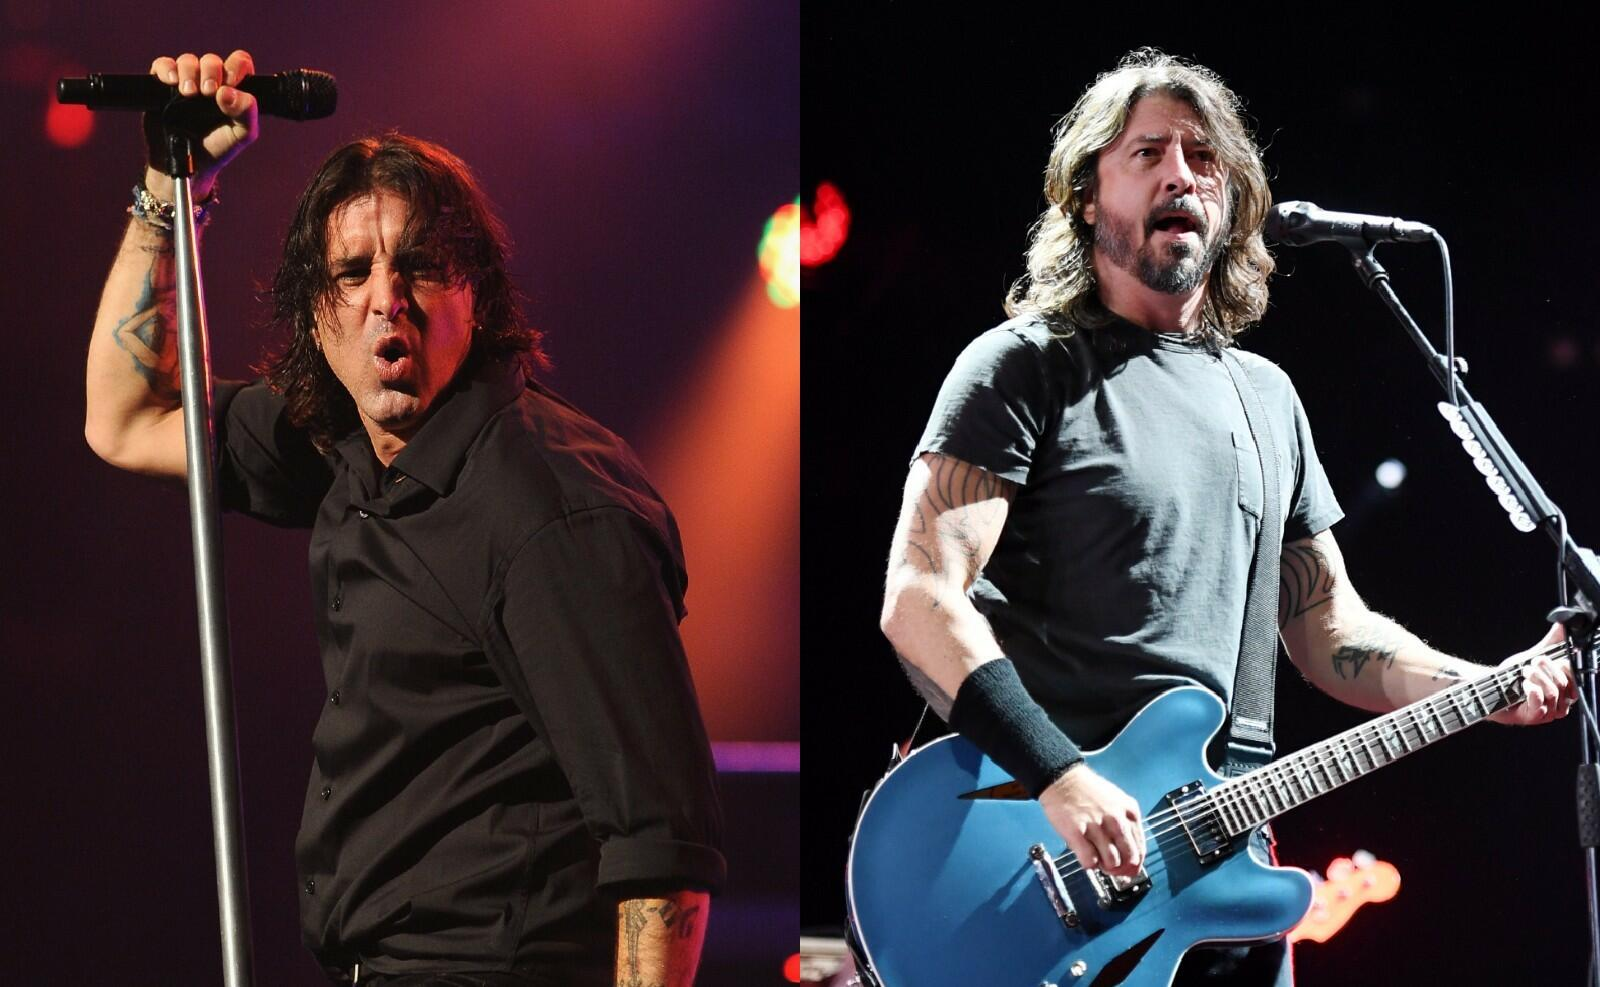 """Dave Grohl Names Creed's """"With Arms Wide Open"""" One His Favorite Songs"""